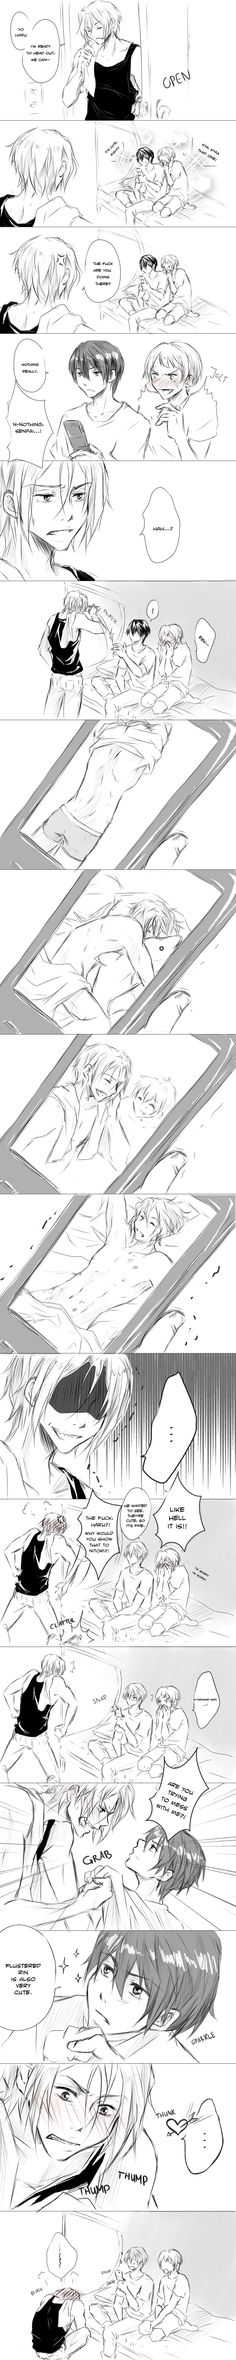 Free! that's funny and cute ^_^